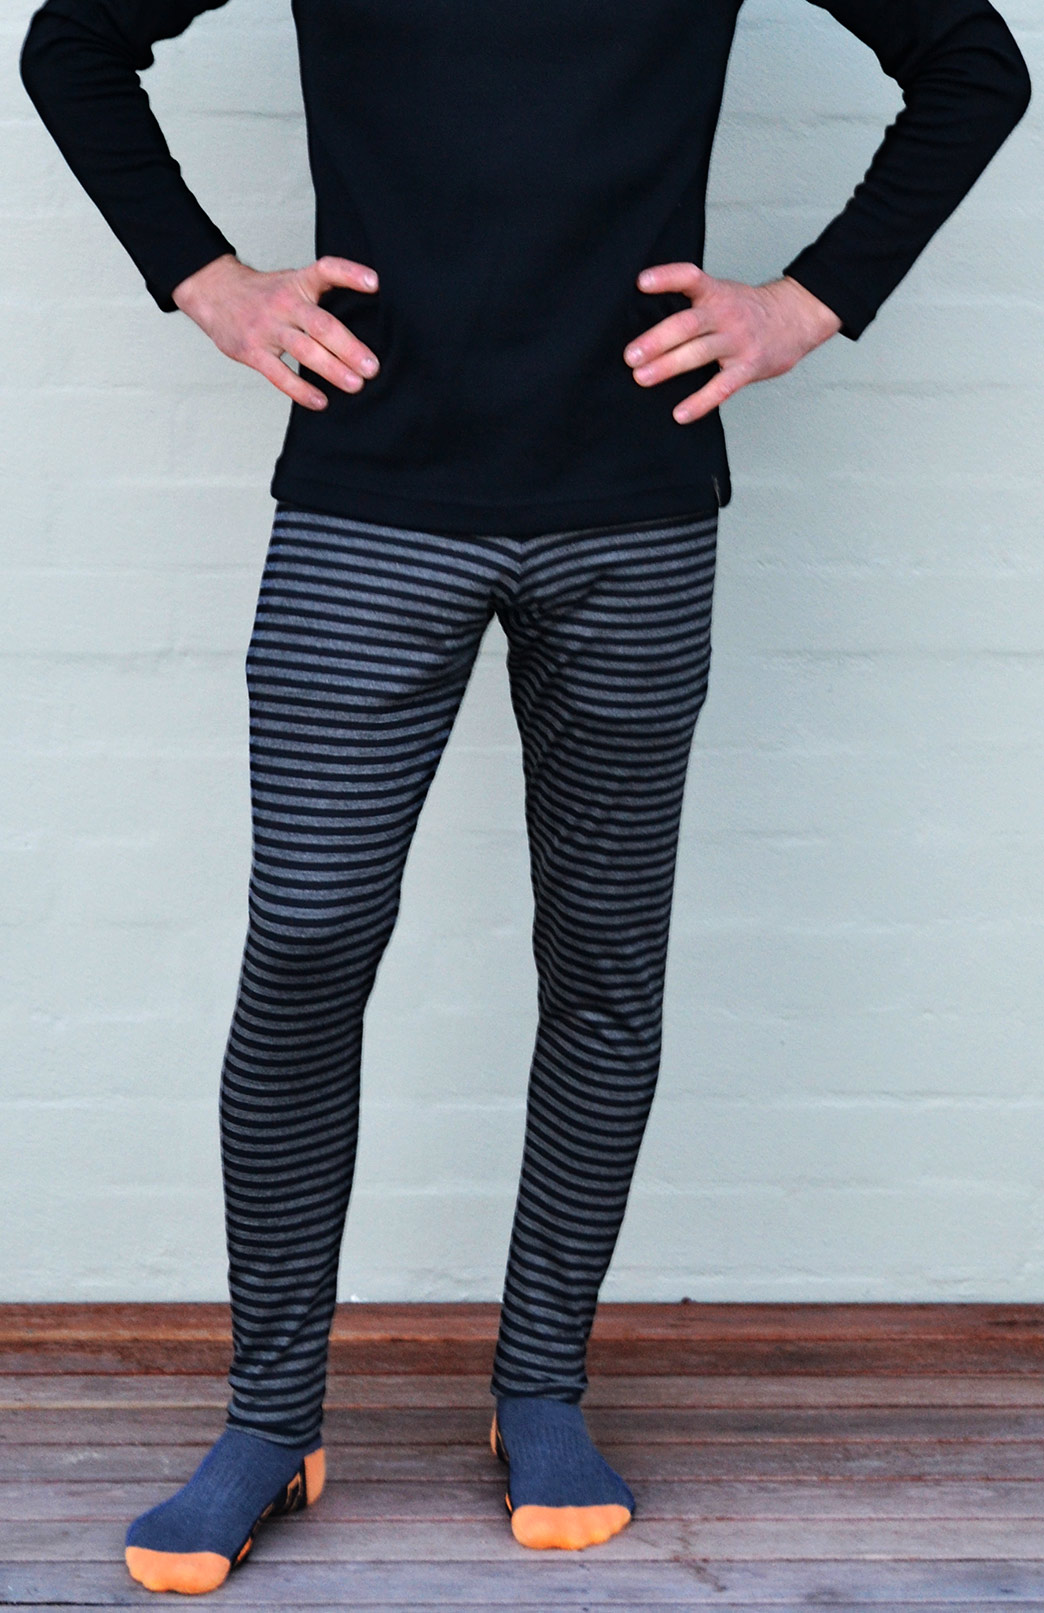 Mens Leggings - 220g - Men's Active and Outdoor Sportswear Thermal Baselayer Leggings - Smitten Merino Tasmania Australia